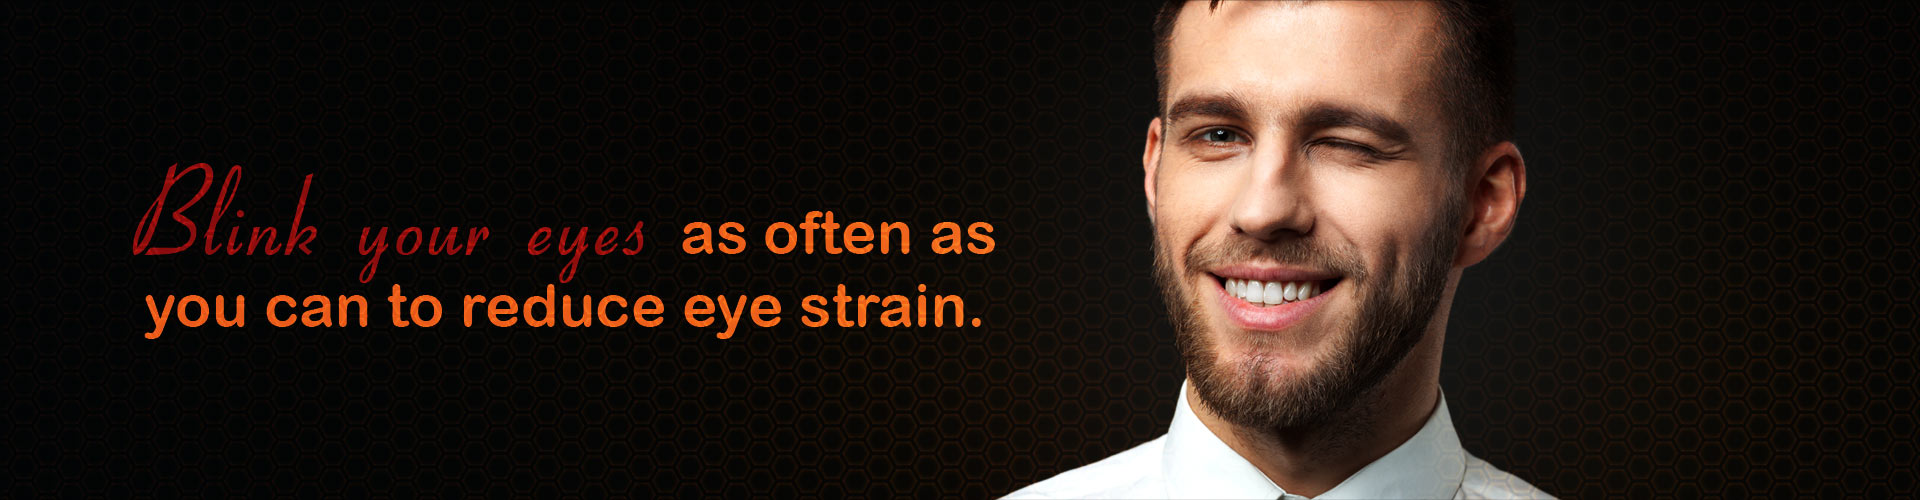 Blink your eyes as often as you can to reduce eye strain.